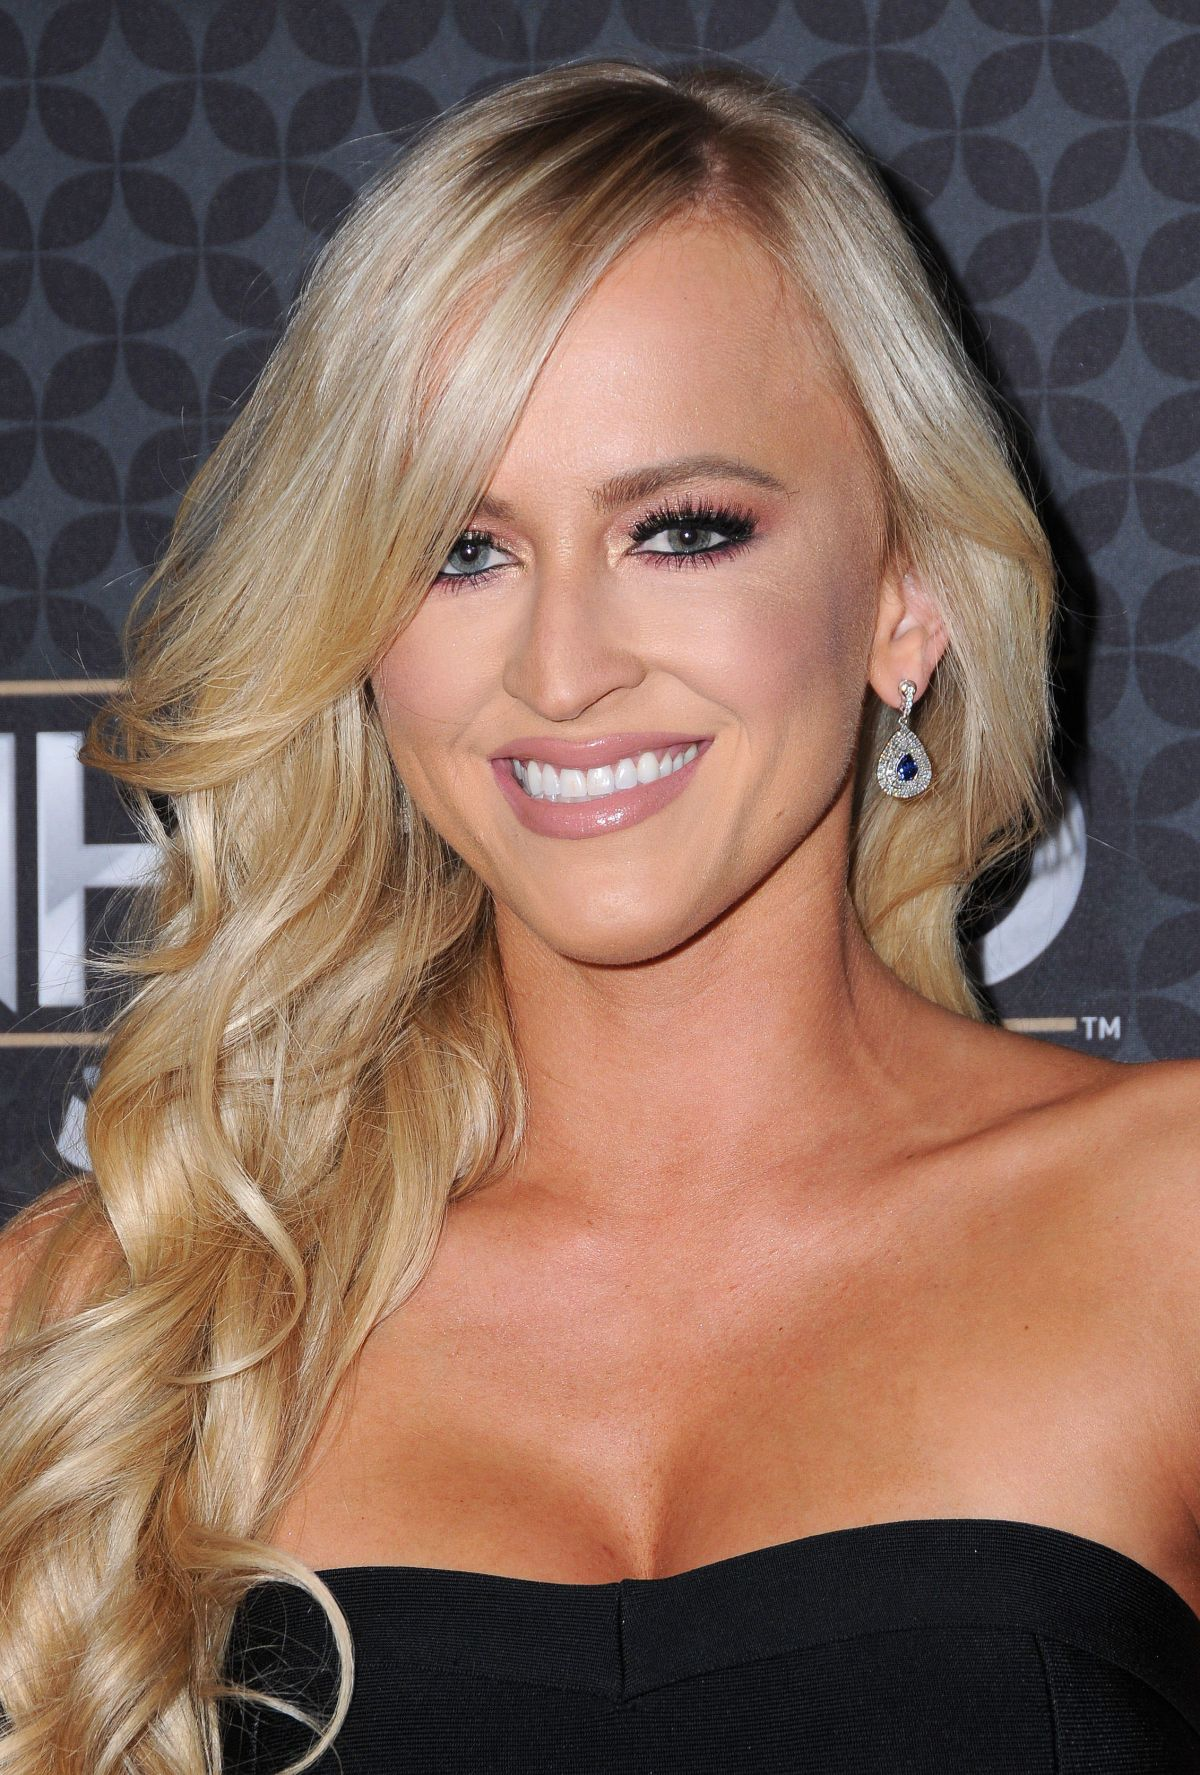 DANIELLE MOINET at NHL 100 Presented by Geico at Microsoft